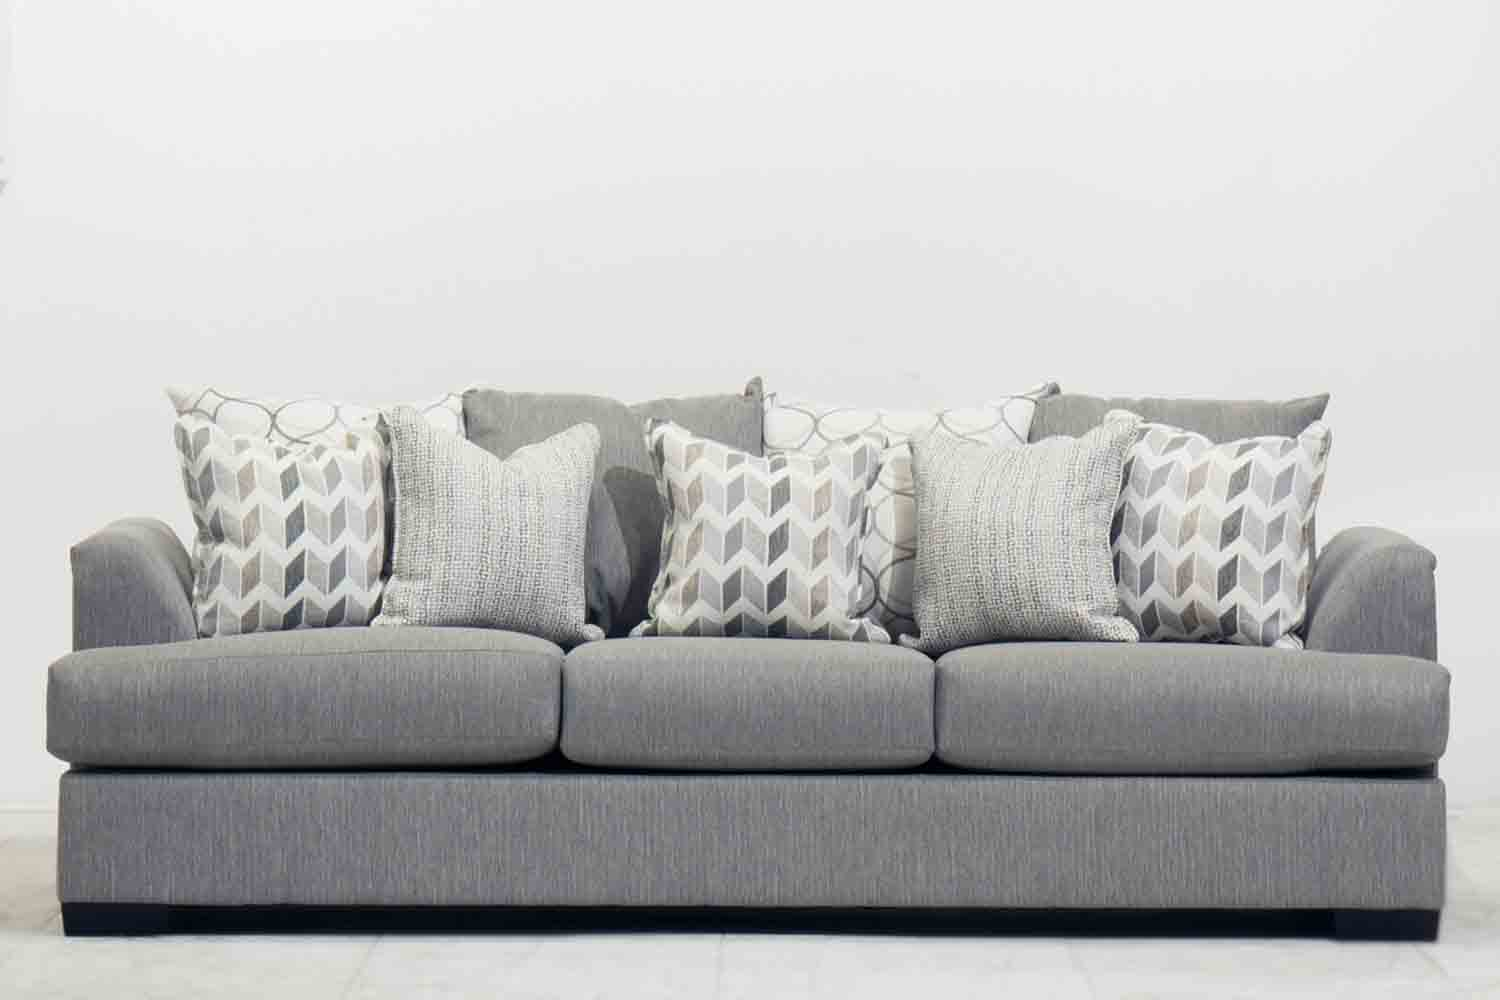 684889562 Pport Sofa In Stone